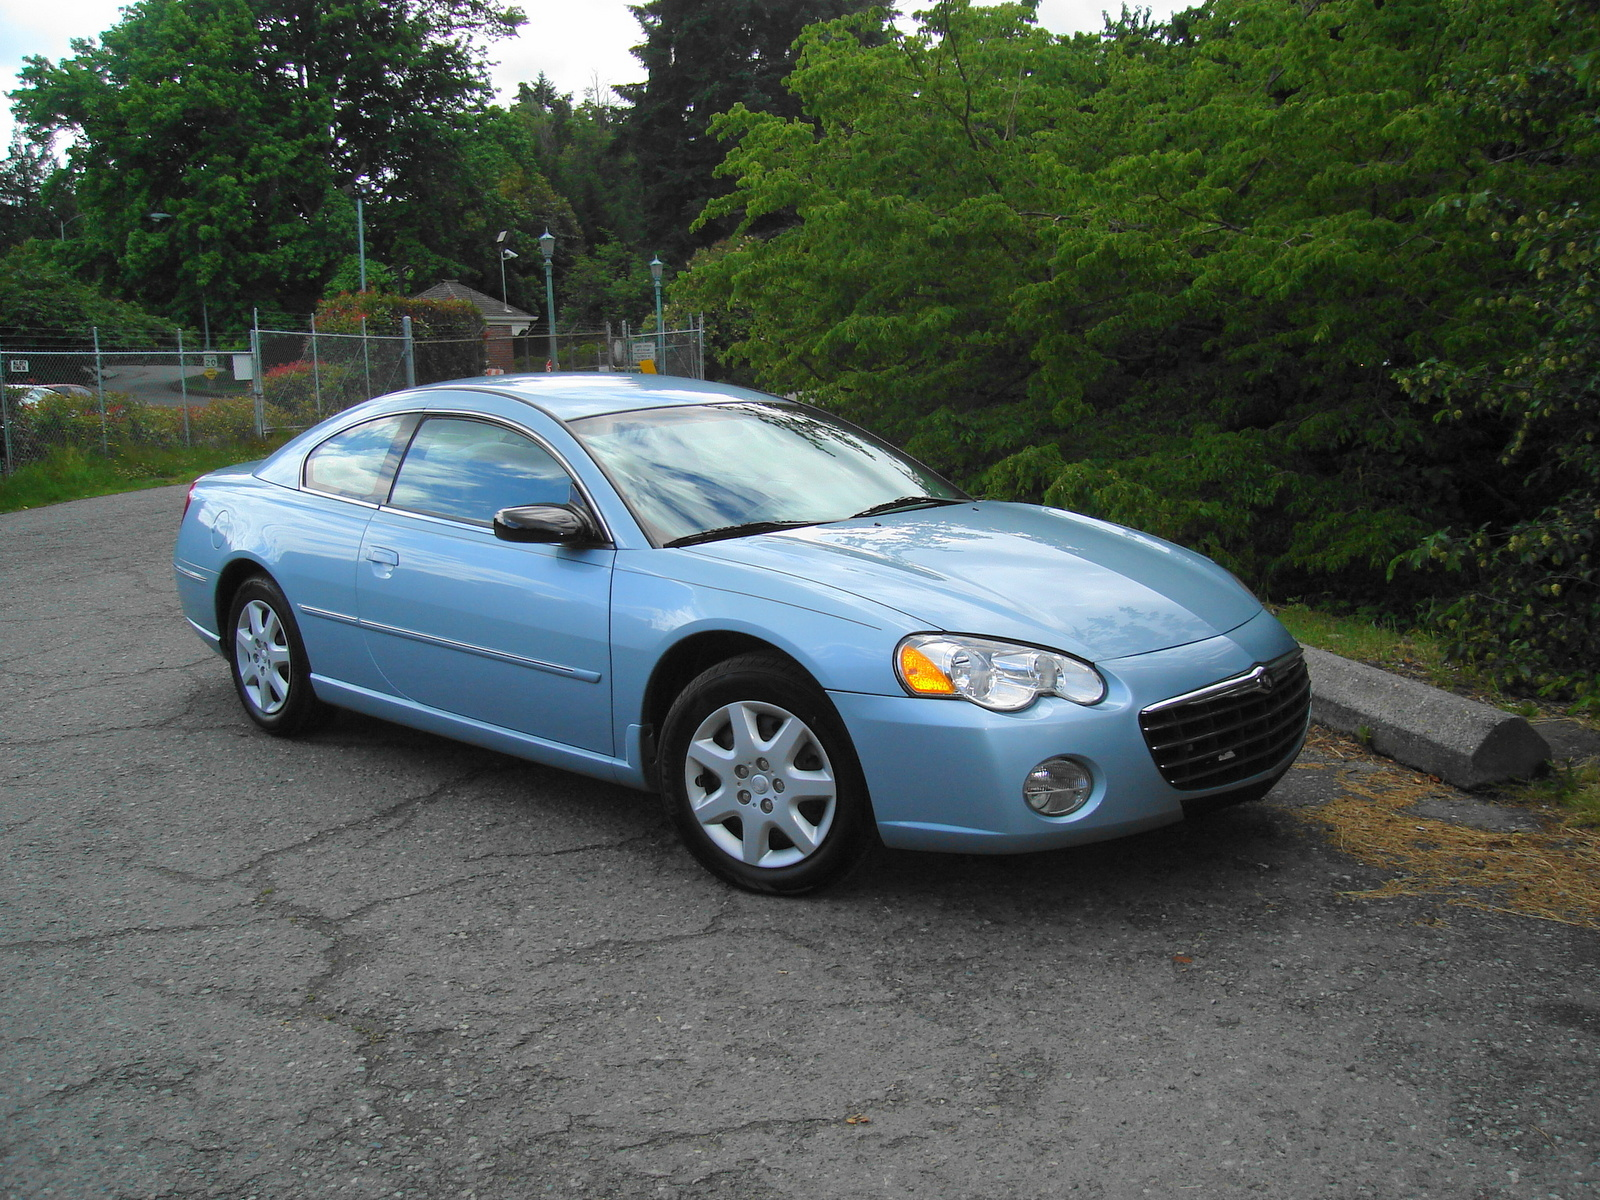 2003 Chrysler Sebring LX Coupe picture